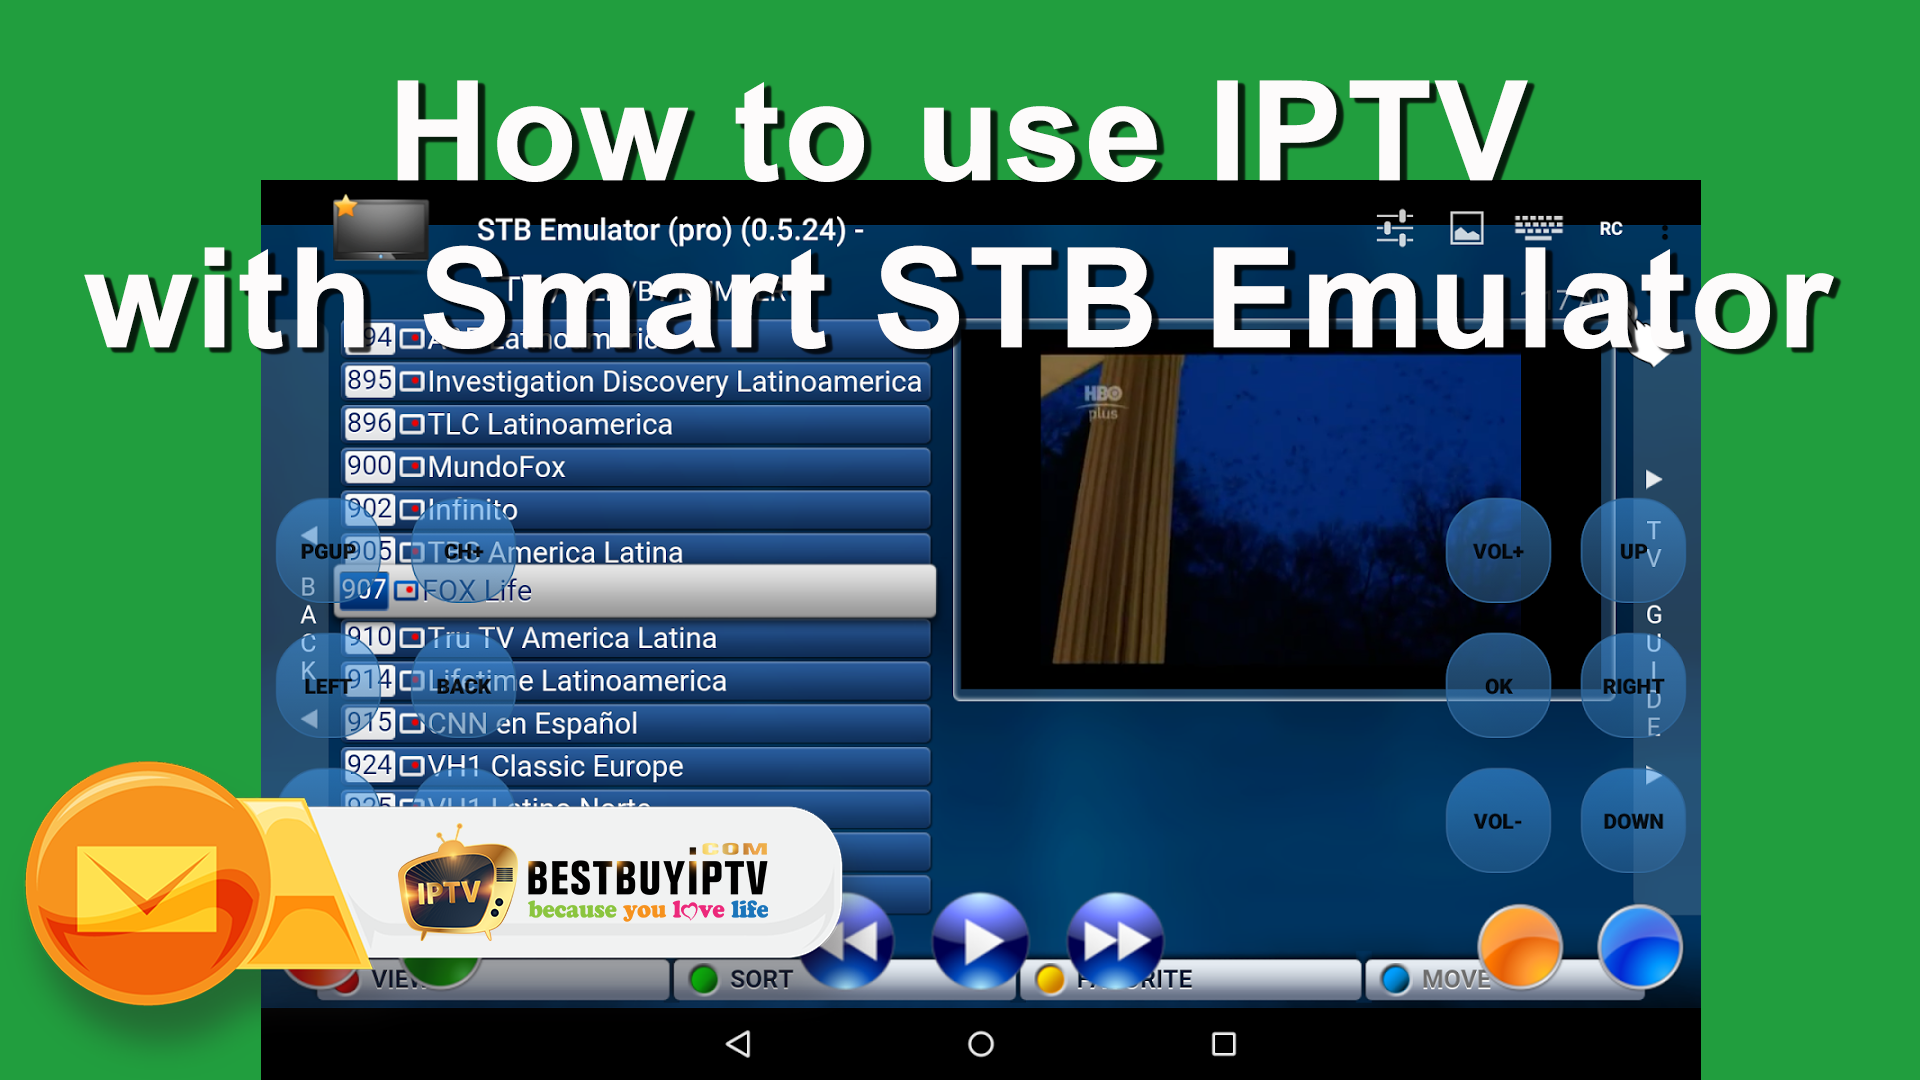 how-to-use-iptv-with-stb